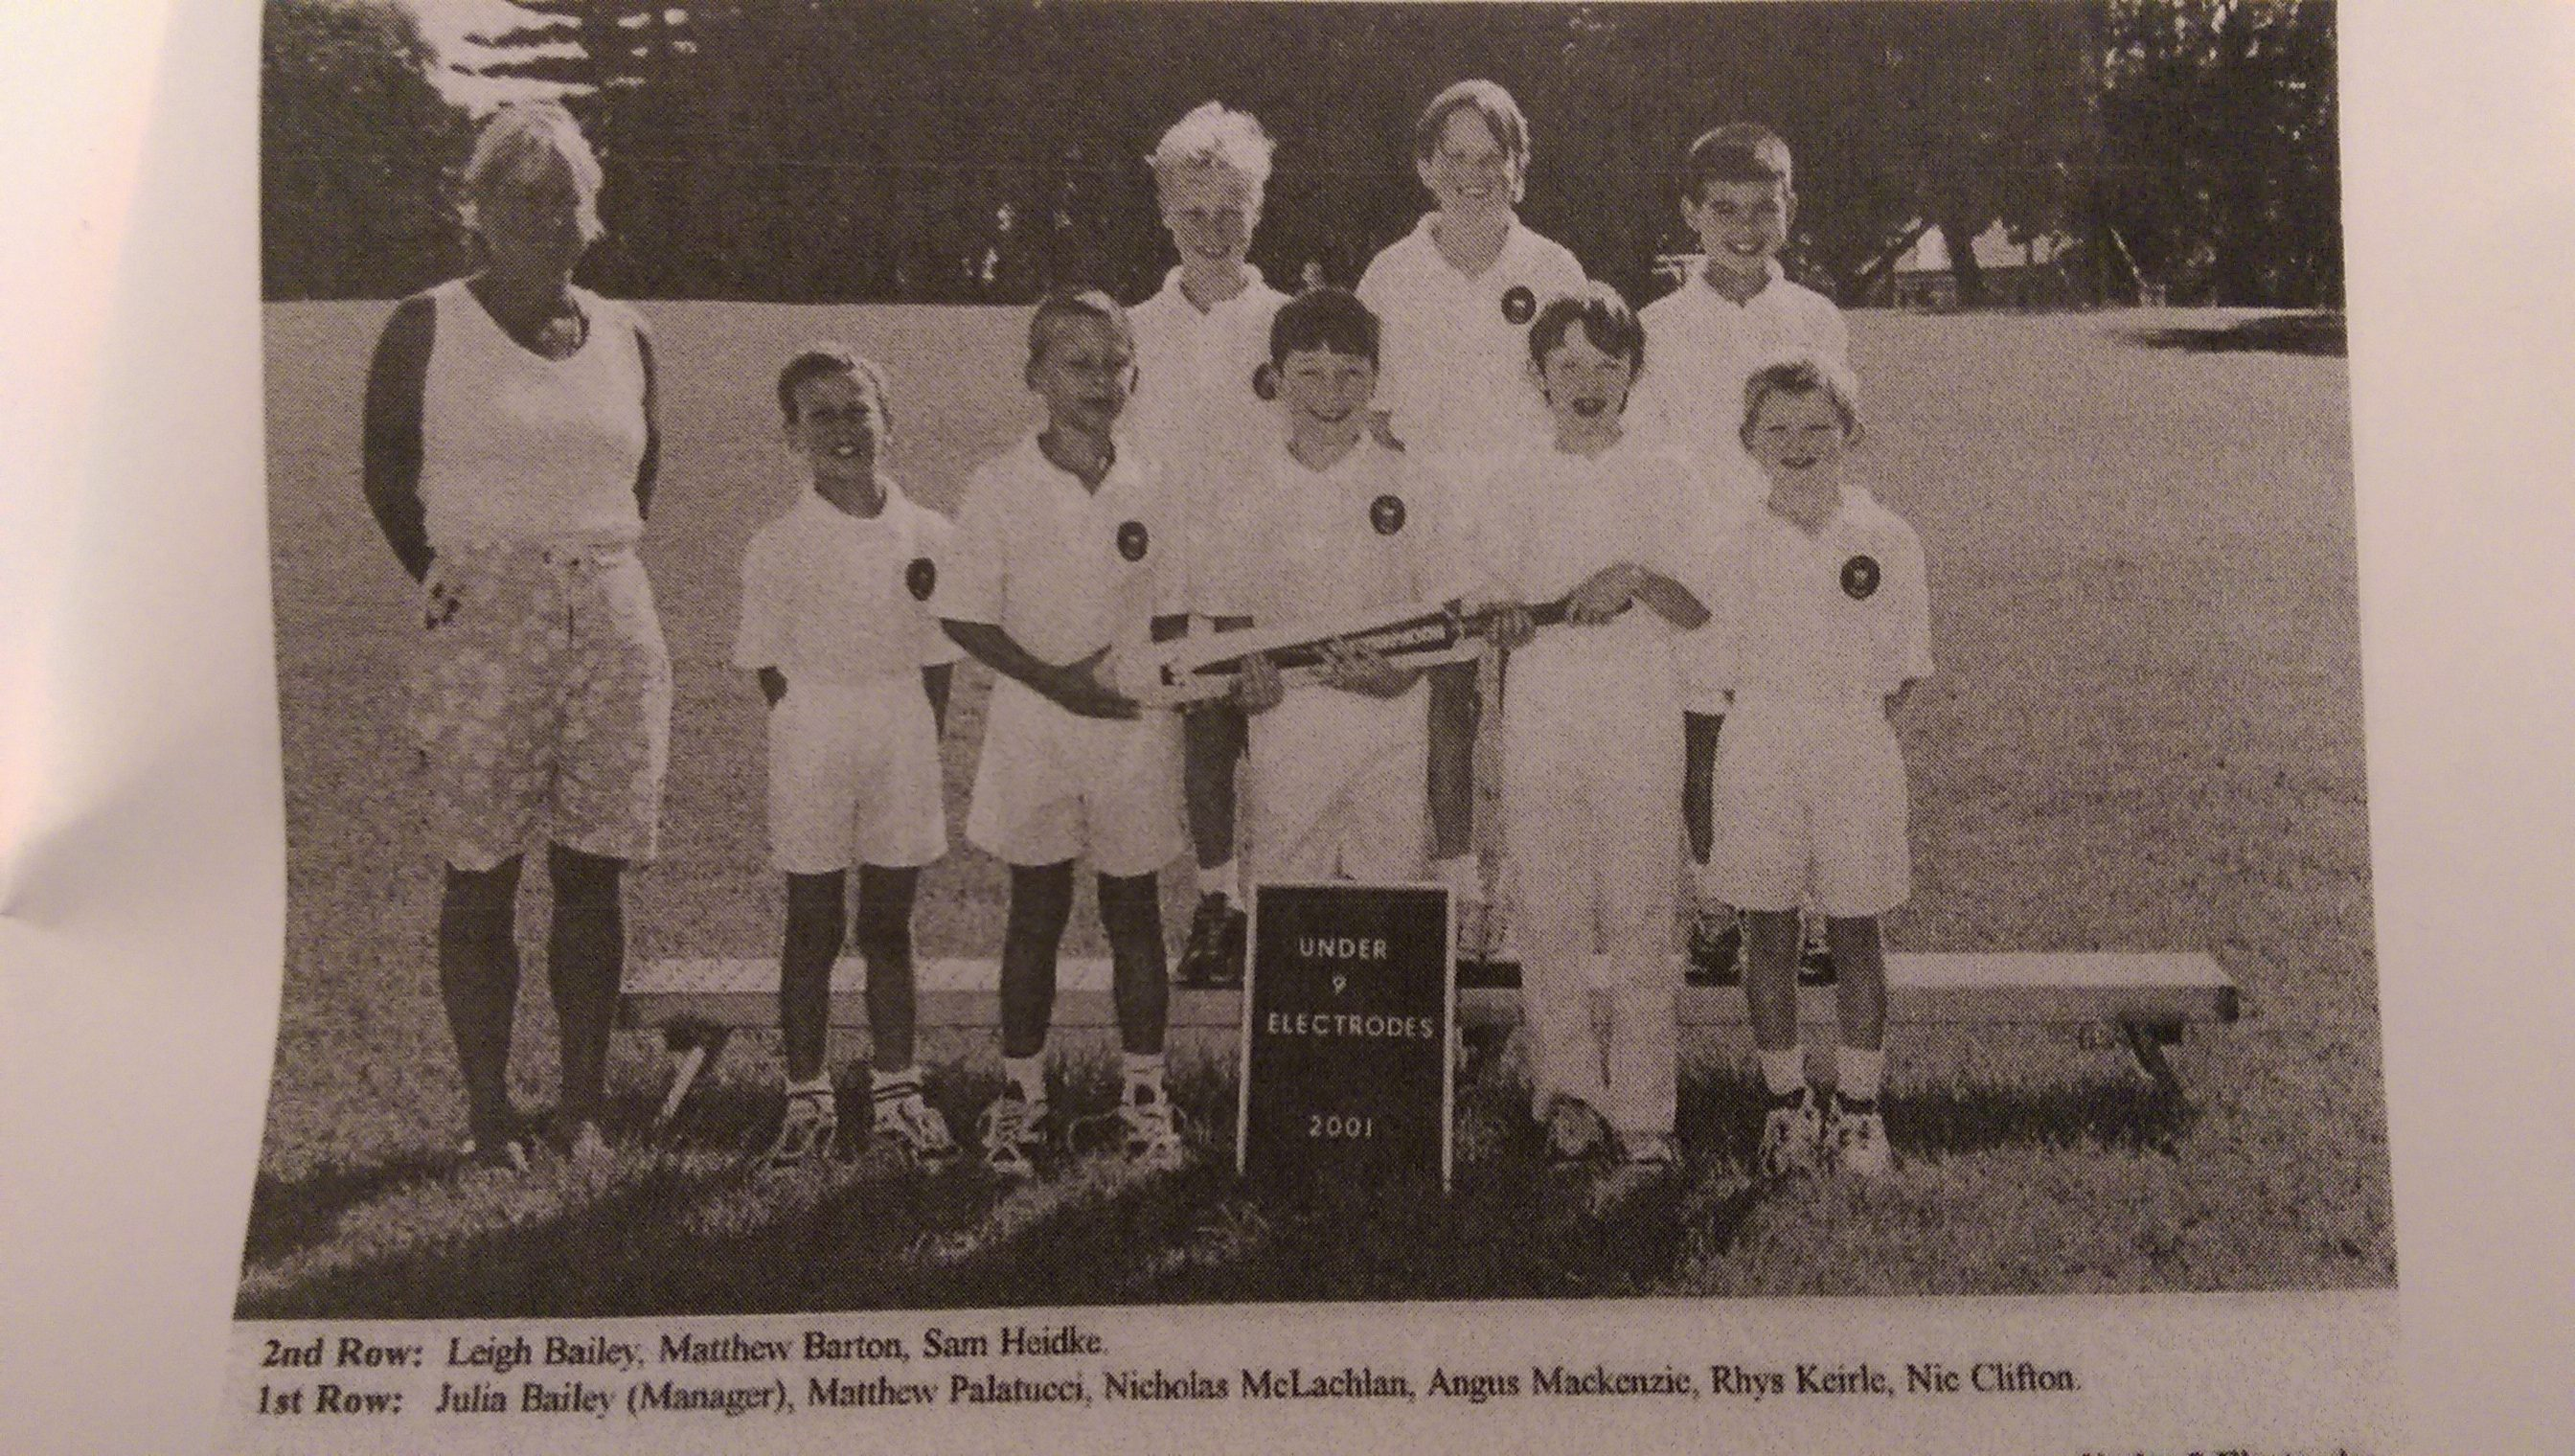 Matt Barton Collaroy Plateau Cricket Club Juniors Team Photo Under 9's 2001